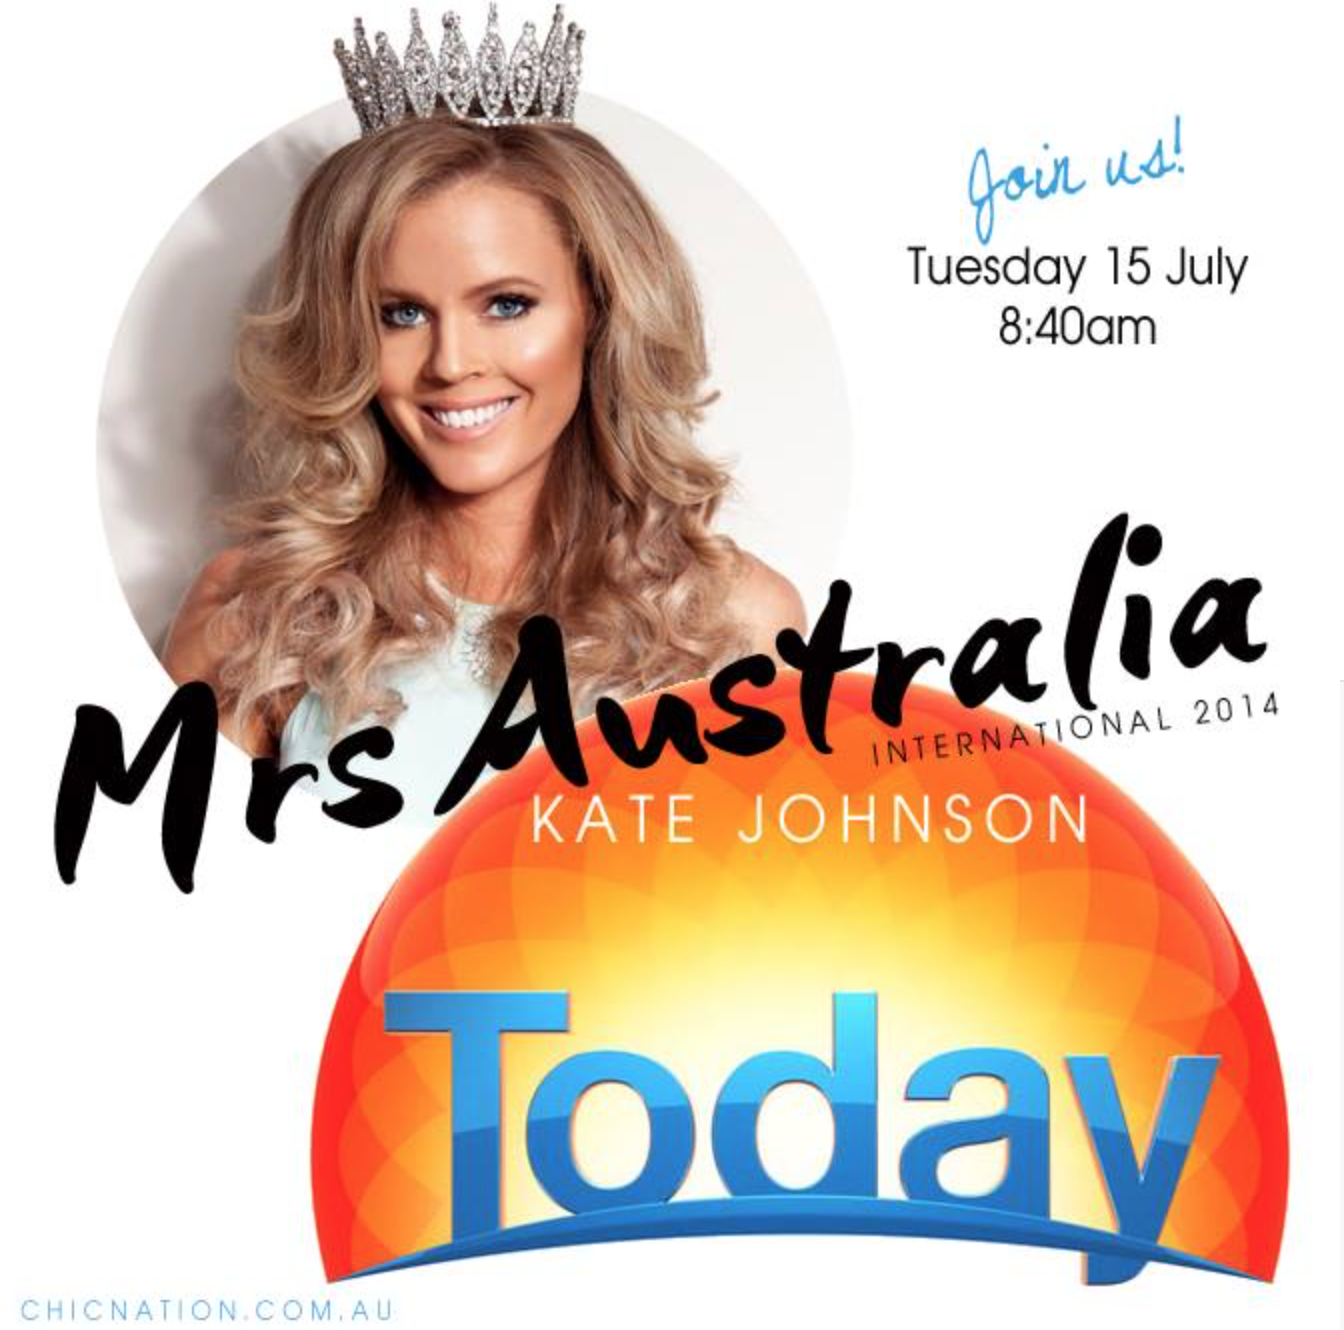 Mrs Australia International 2015 Kate Johnson